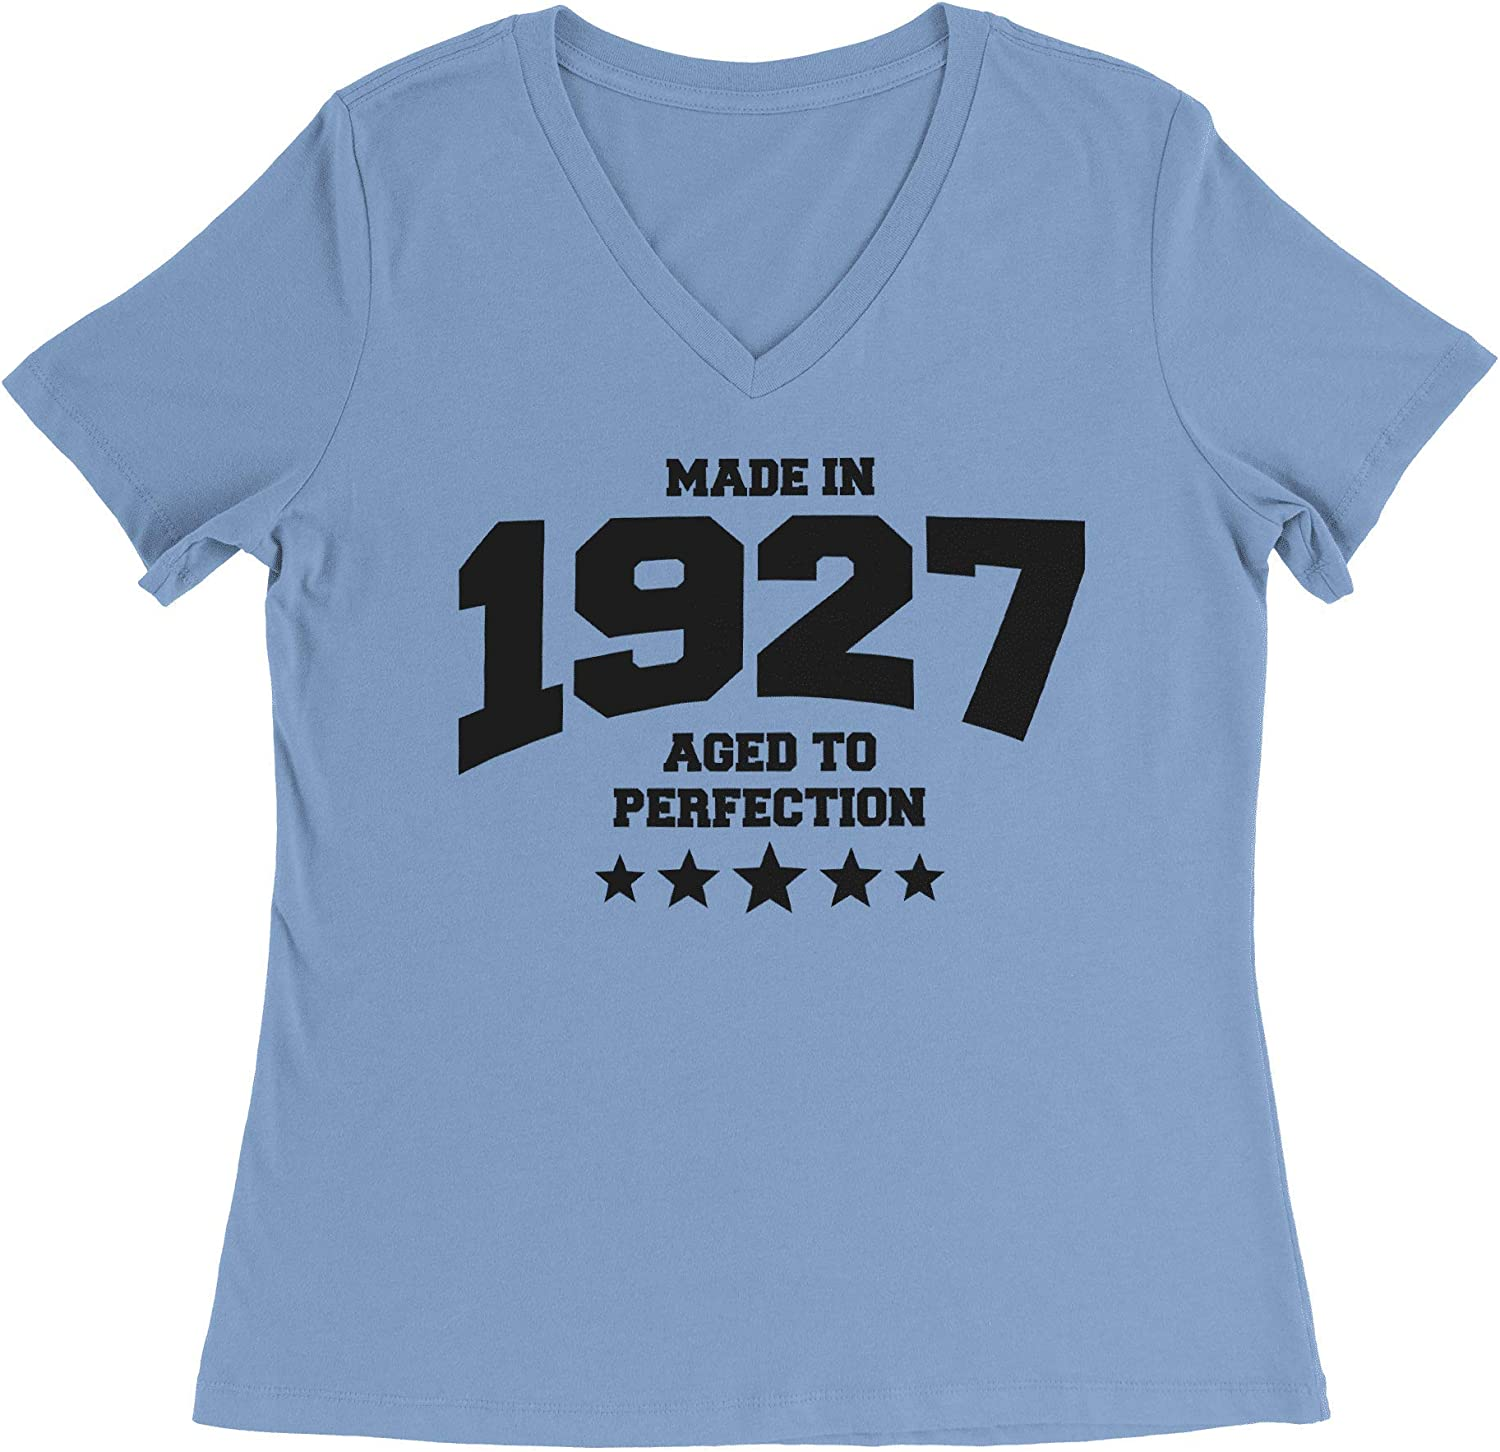 HARD EDGE DESIGN Women's Athletic Aged to Perfection - 1927 T-Shirt